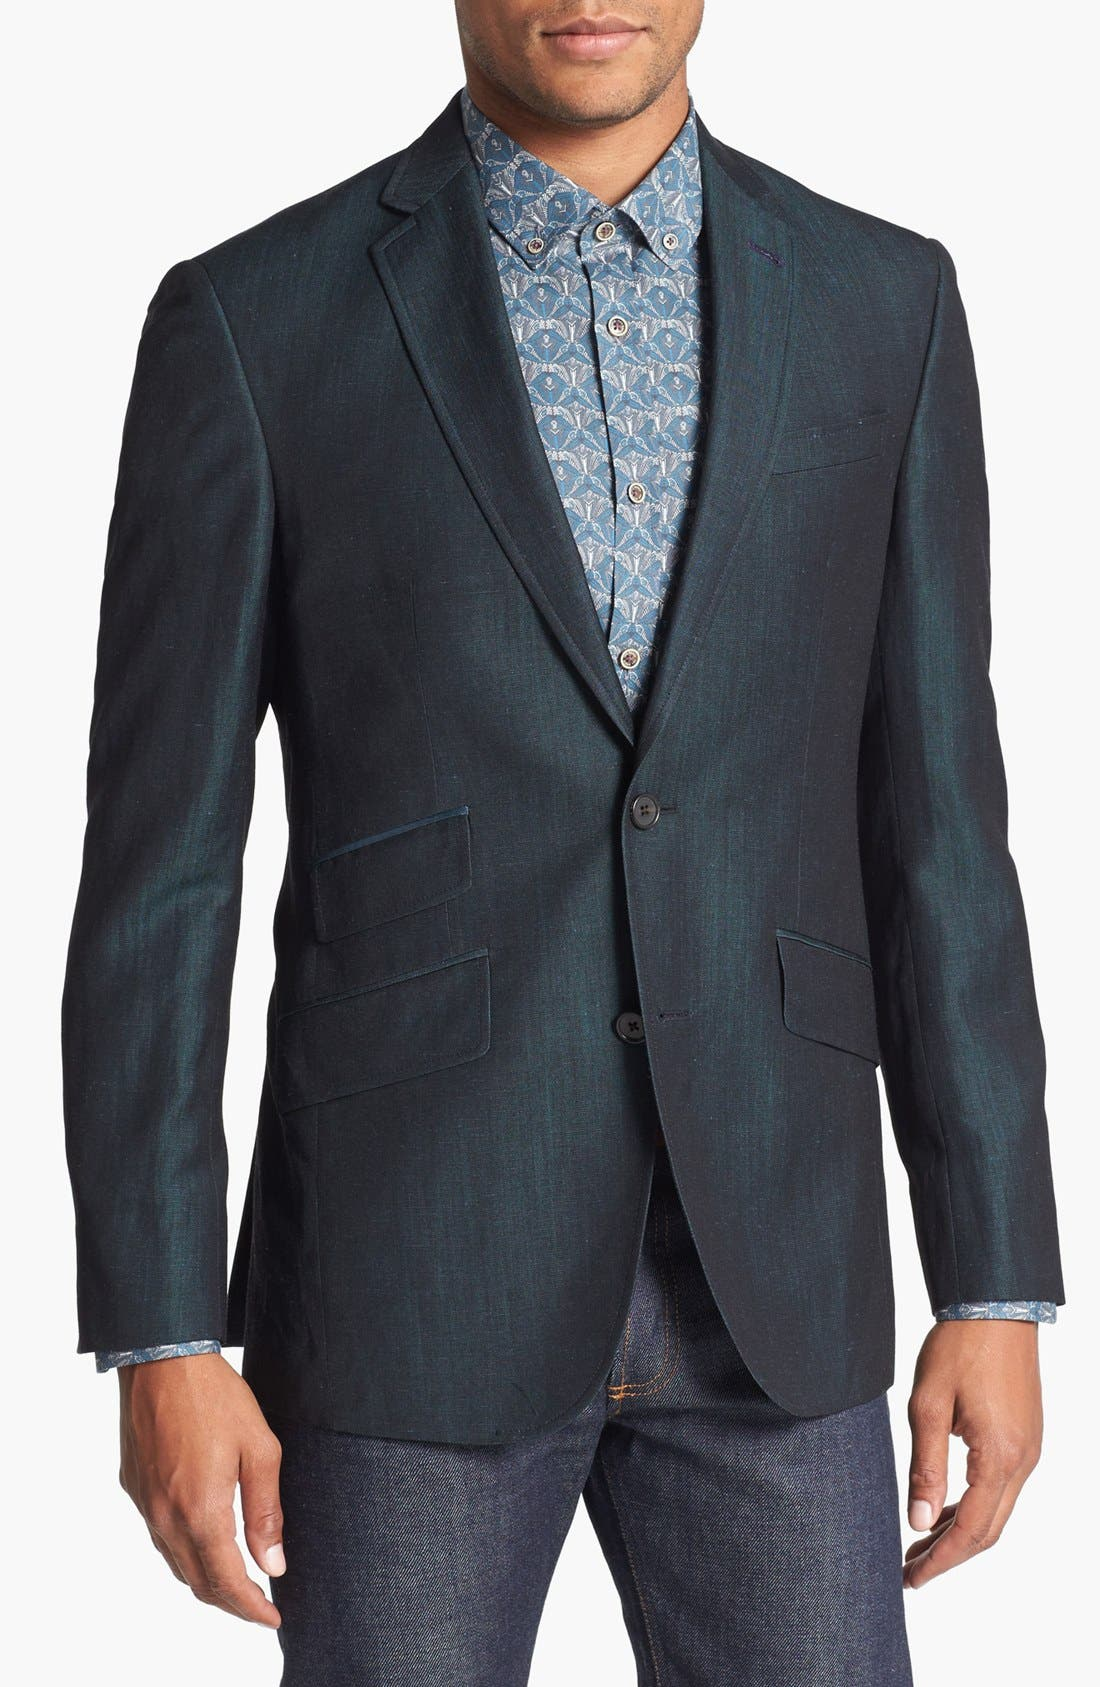 Main Image - Ted Baker London 'Tram' Trim Fit Microcheck Sportcoat